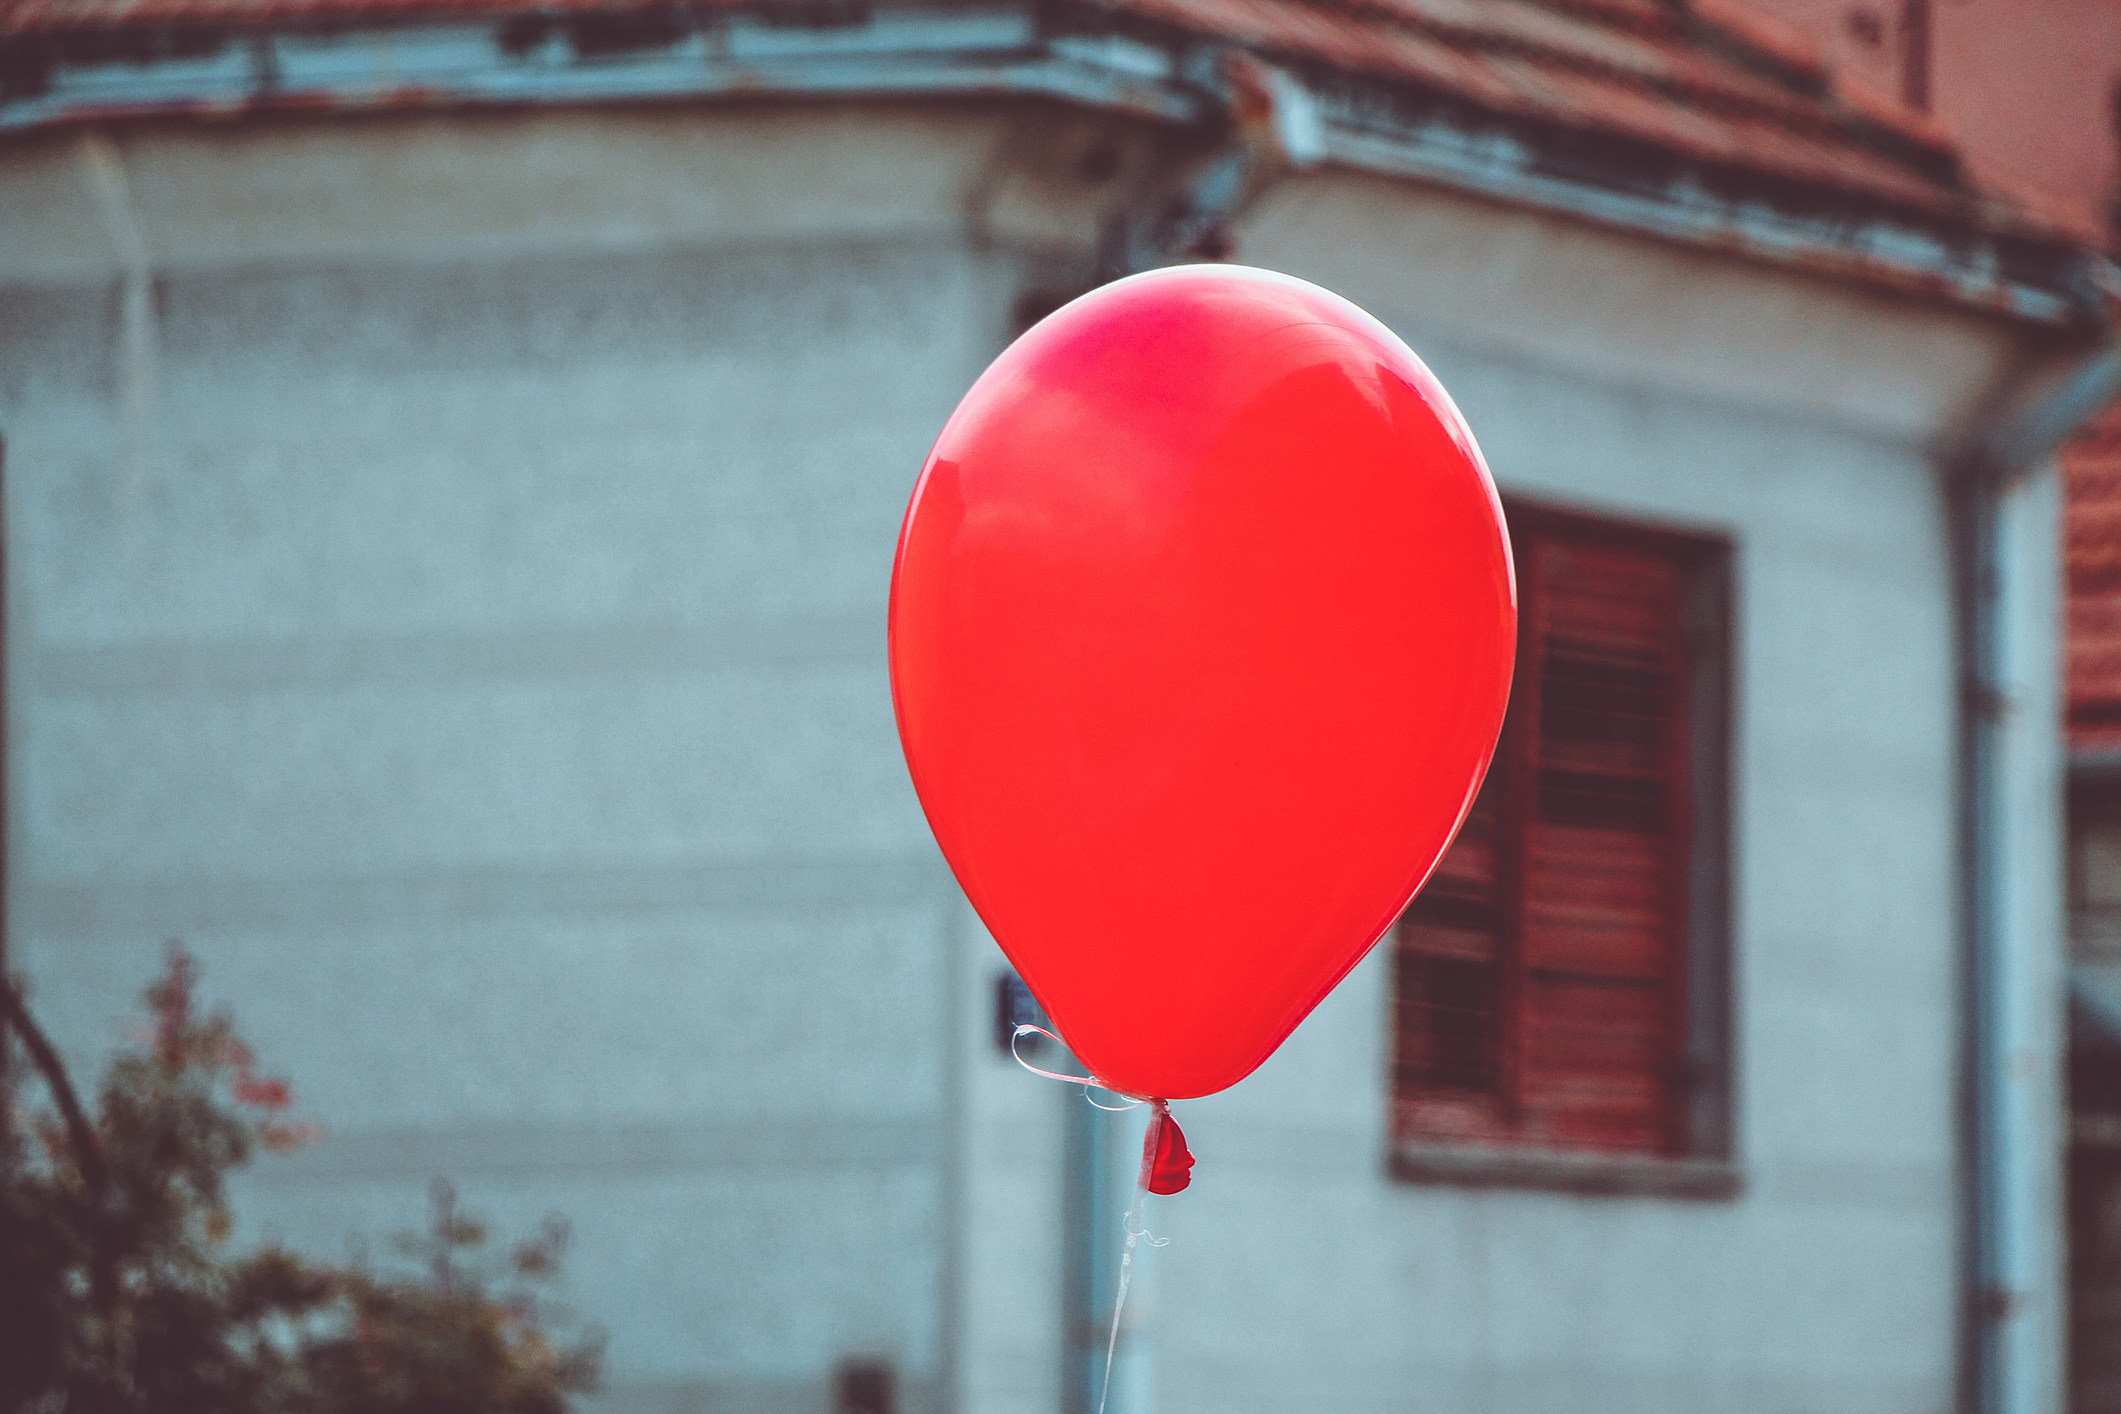 One red balloon on sunny day outdoor.